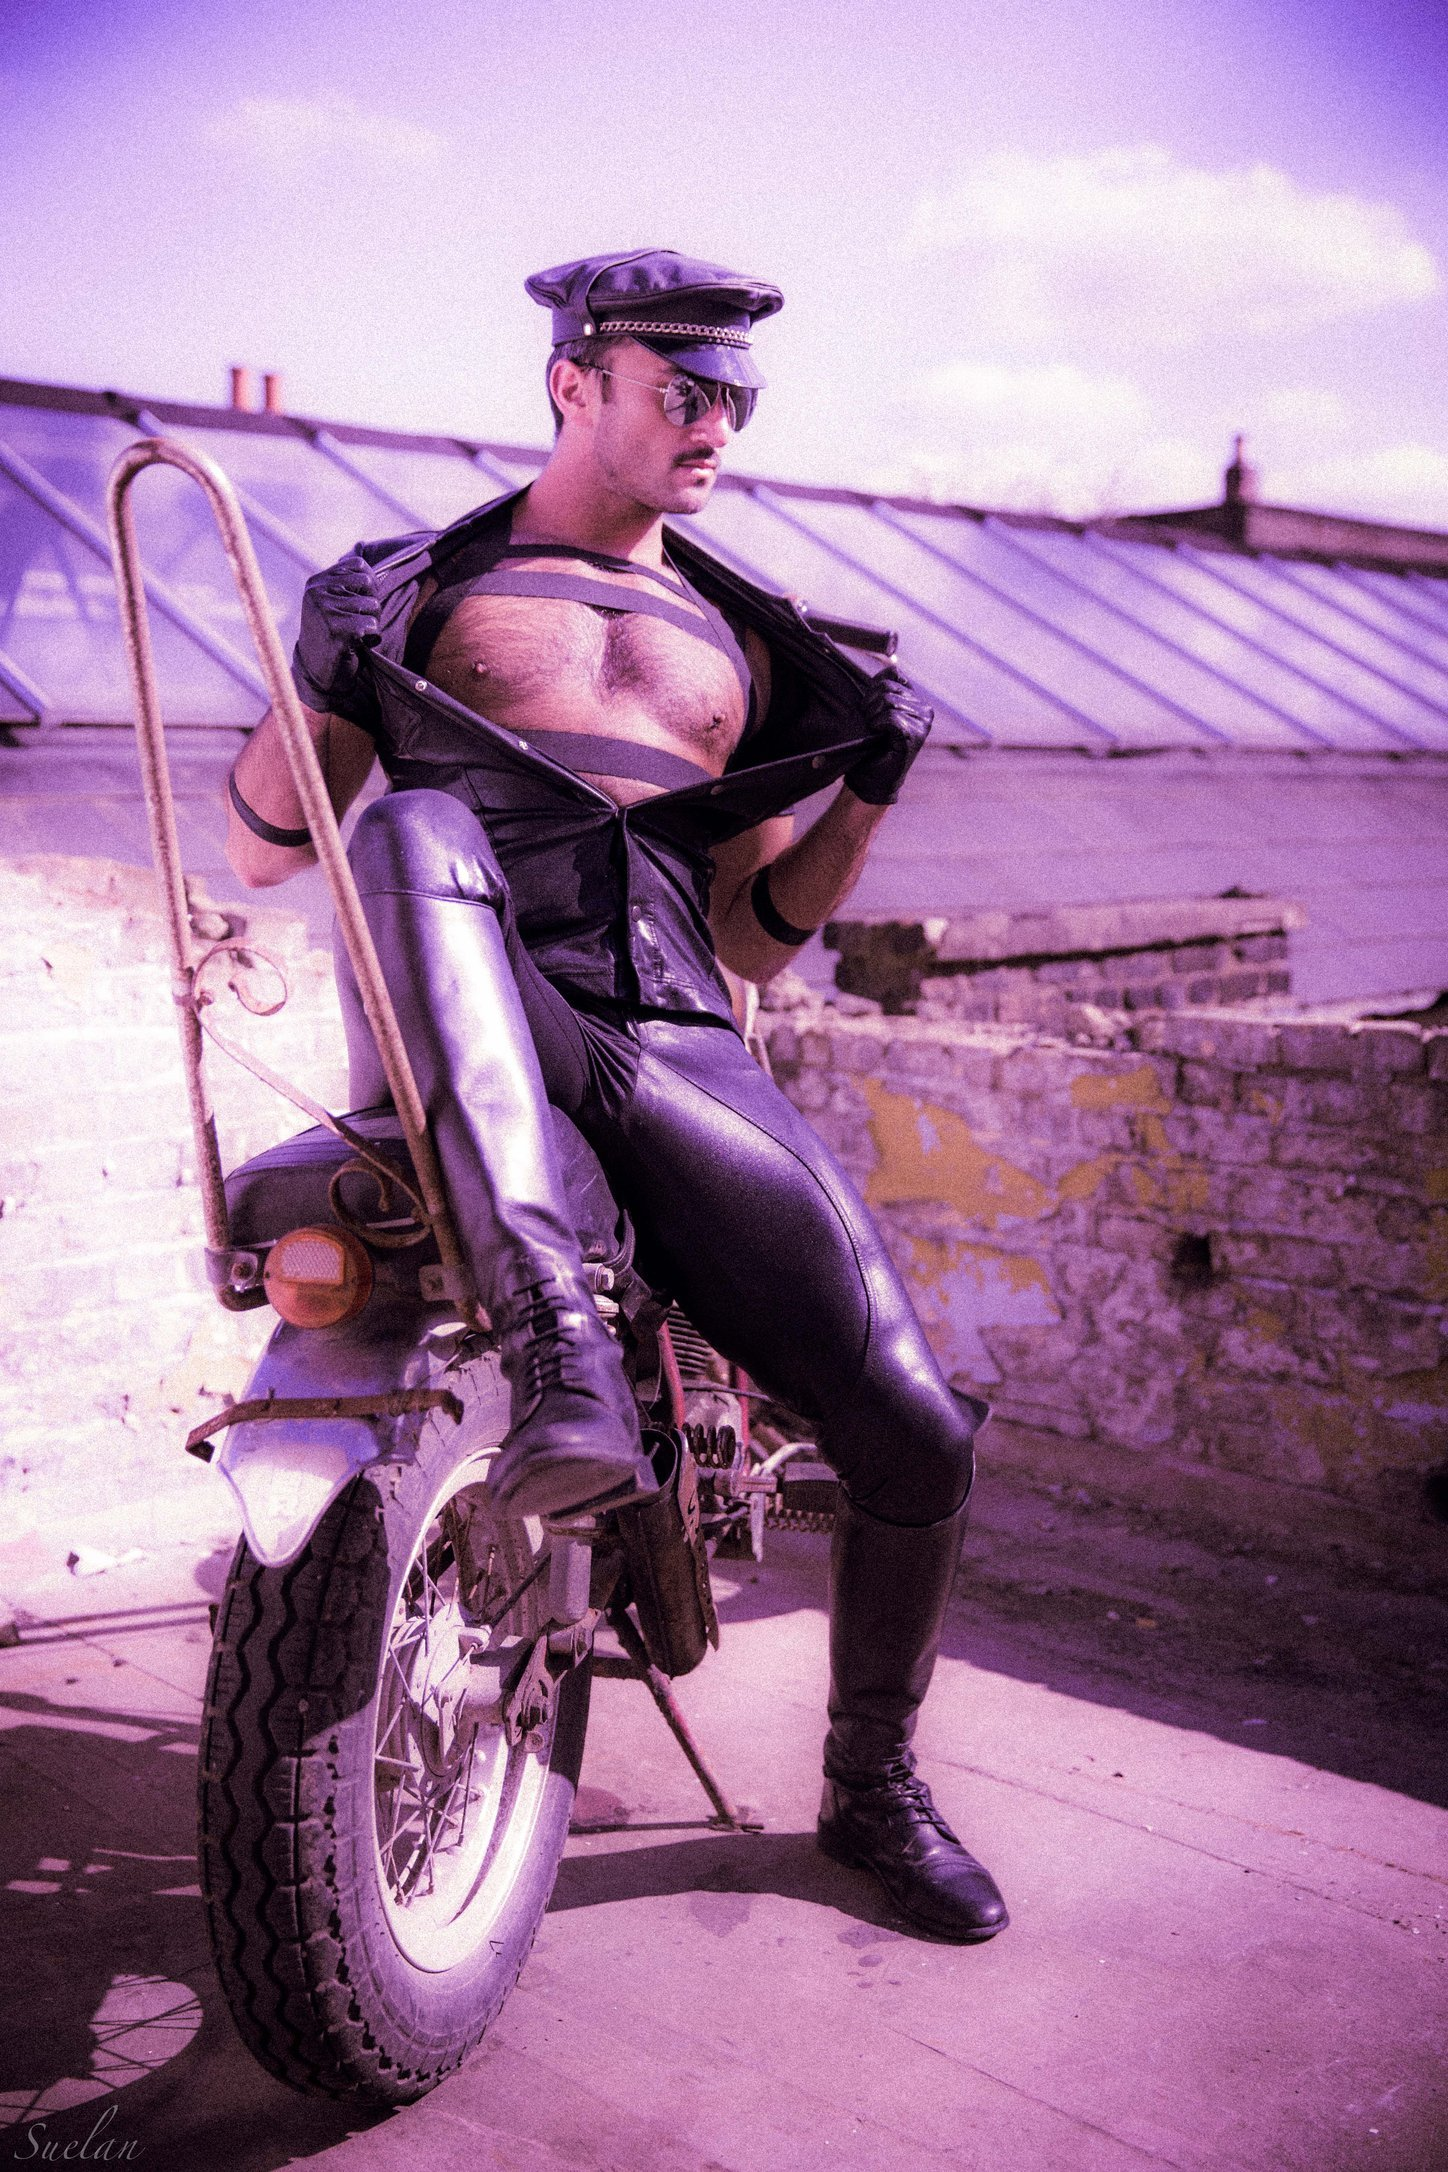 Phil InGud as Tom Finland wearing Slickitup